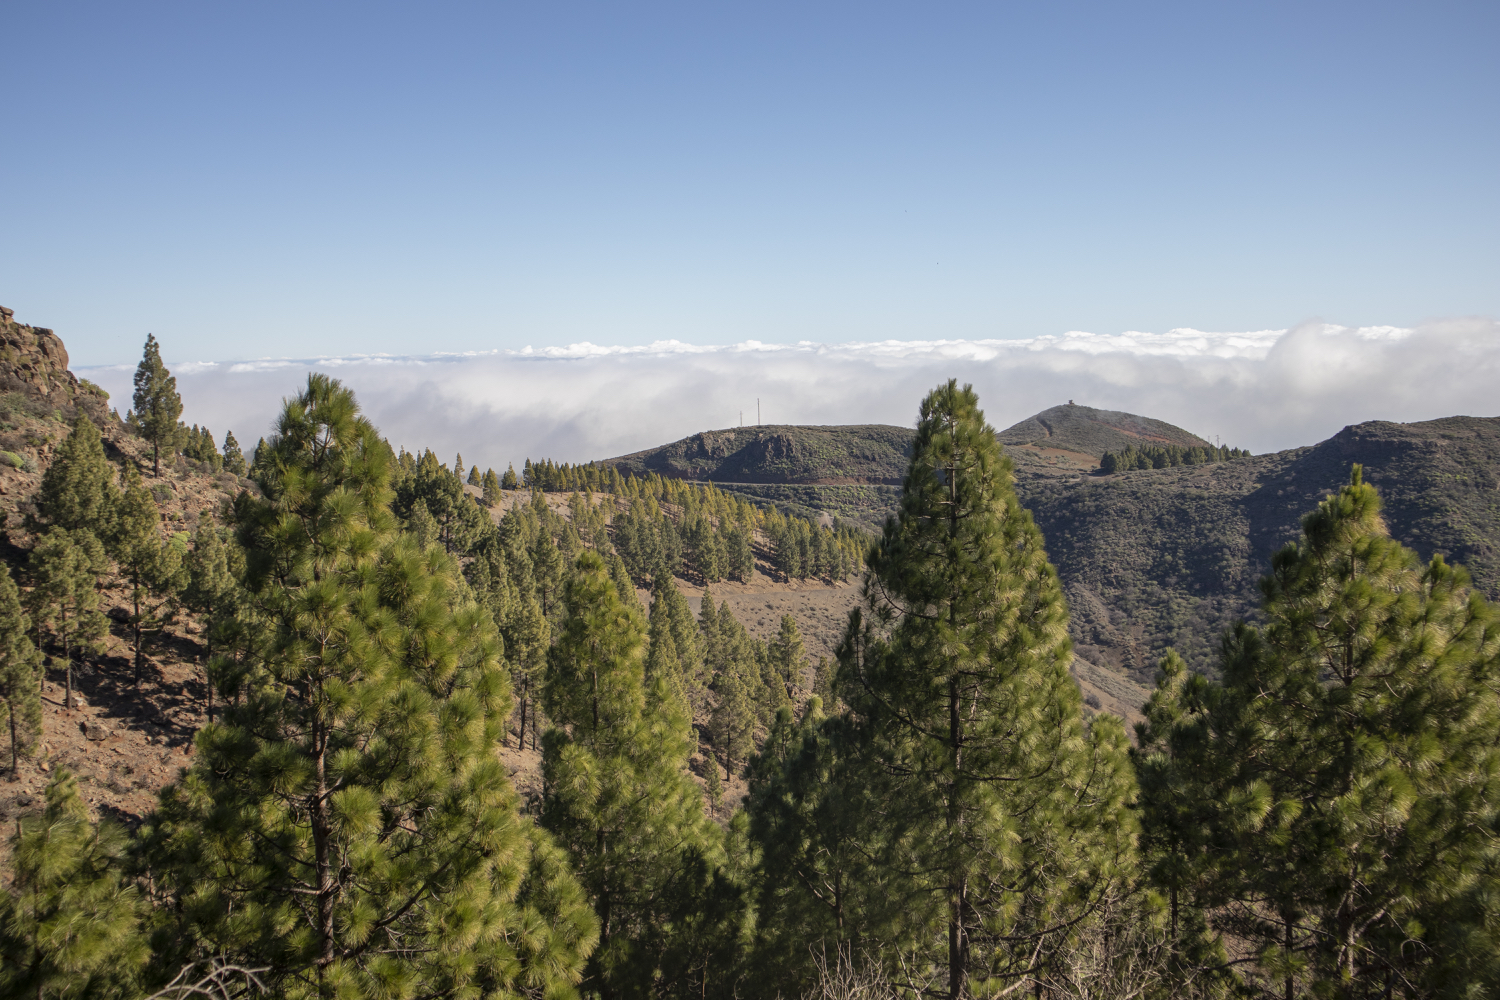 View over the pine forests and clouds in the height